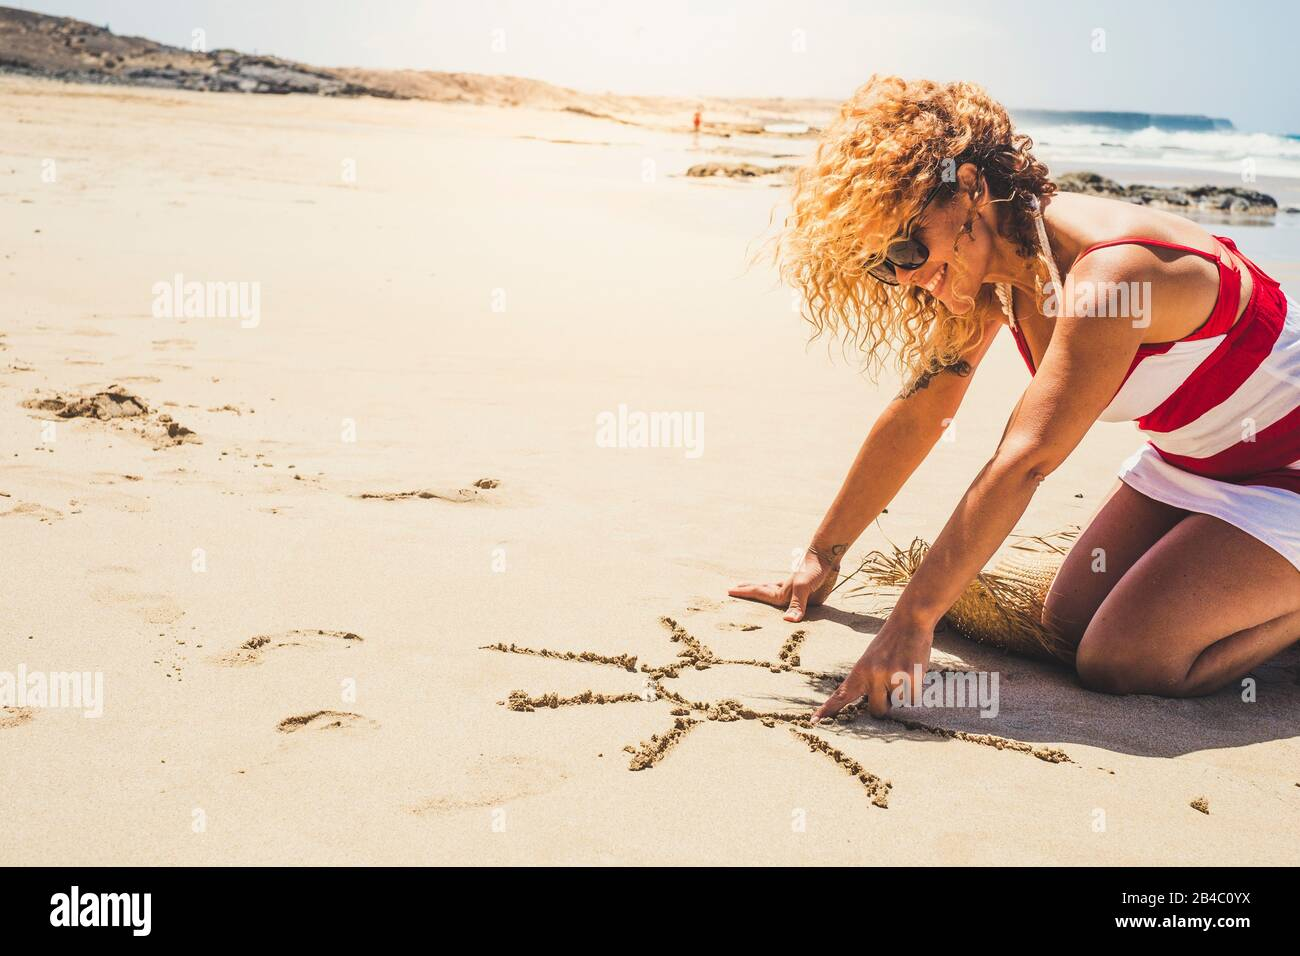 Happy cheerful woman on summer vacation enjoying the beach and the outdoor designing a sun on the sand - beautiful curly caucasian people lady in outdoor leisure activity Stock Photo